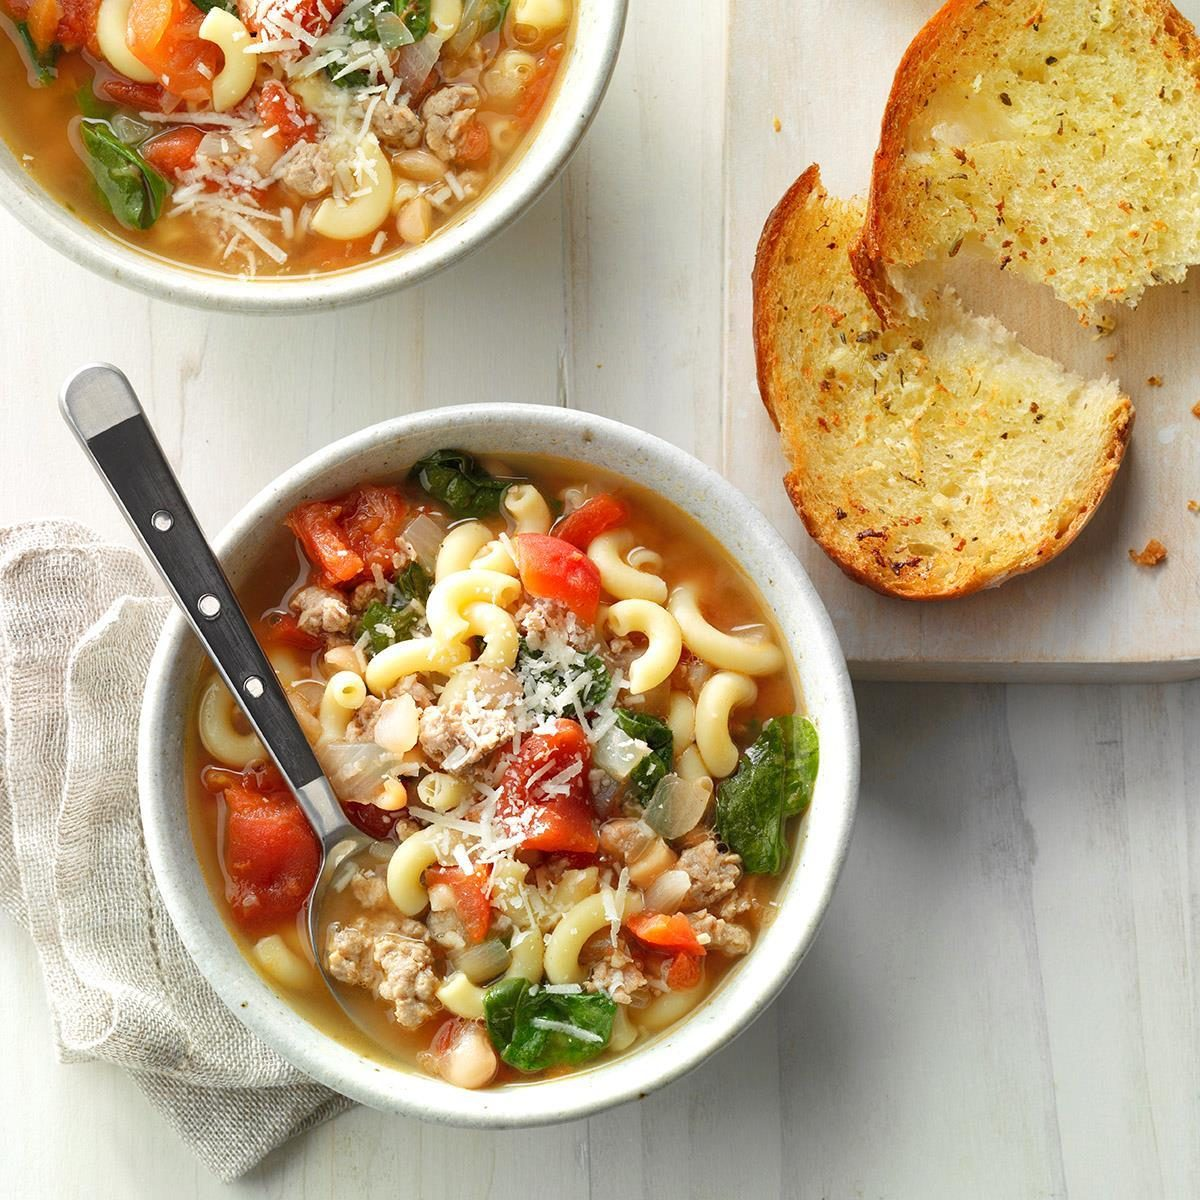 Wednesday: Pasta Fagioli Soup